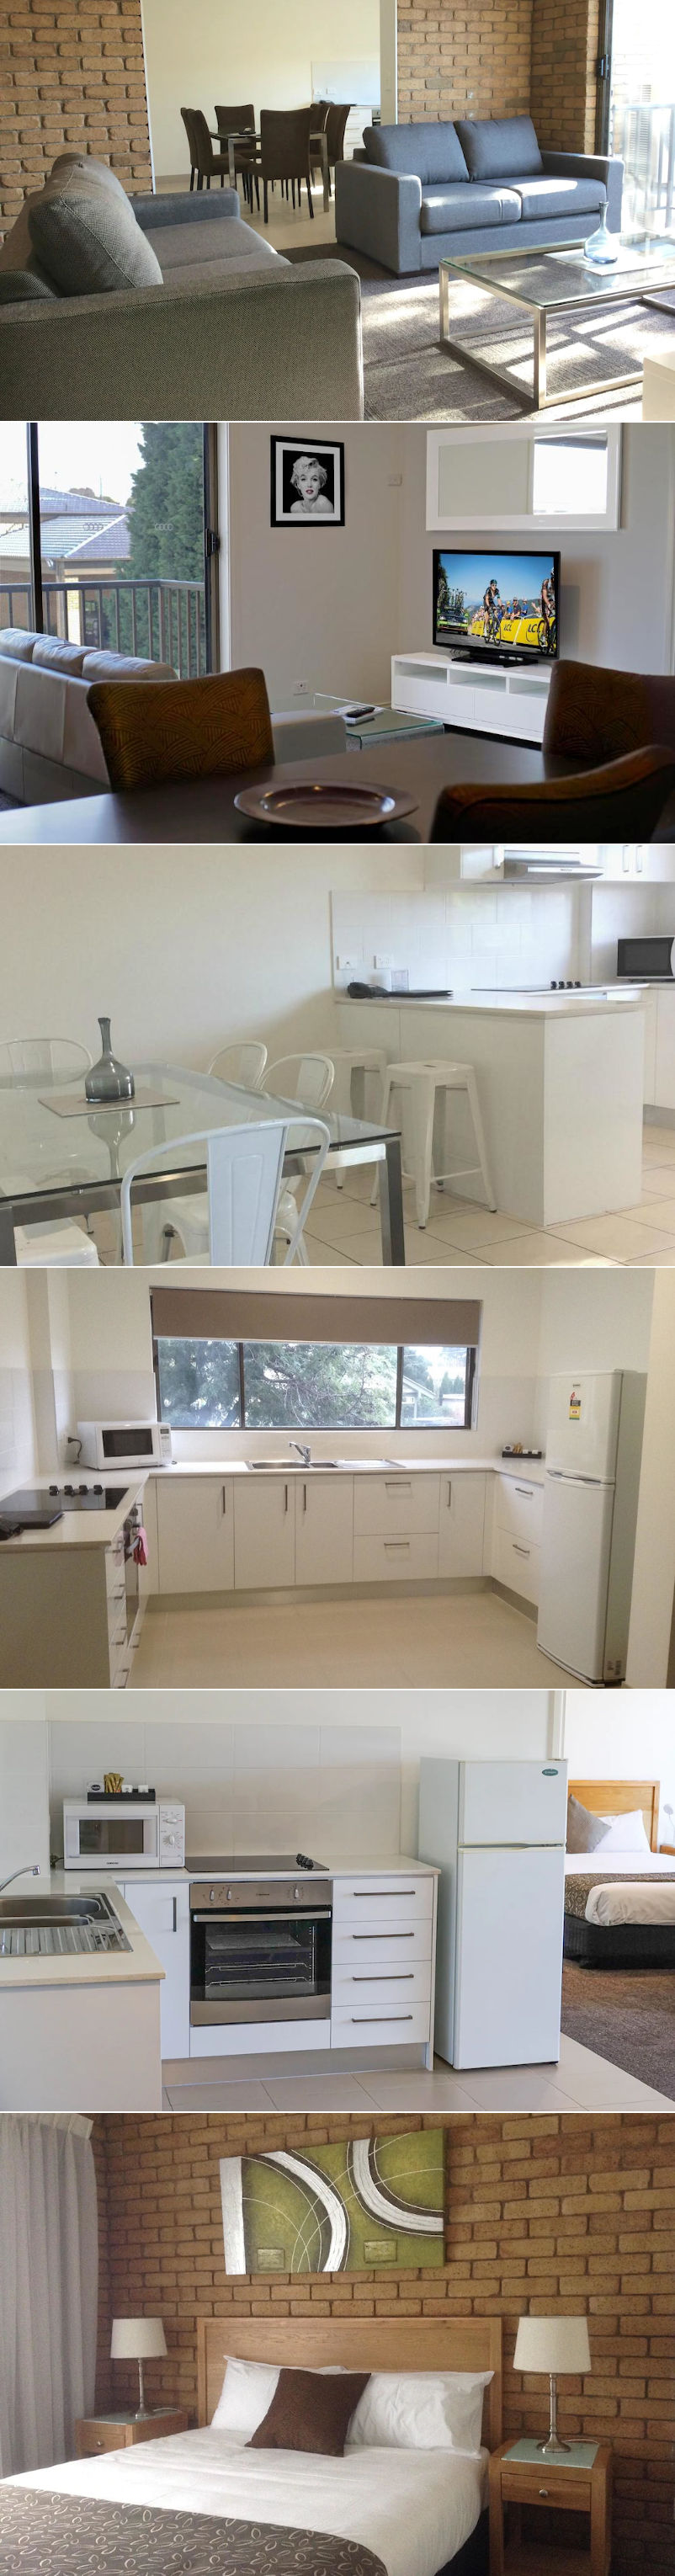 Geelong Motor Inn & Serviced Apartments - Apartments